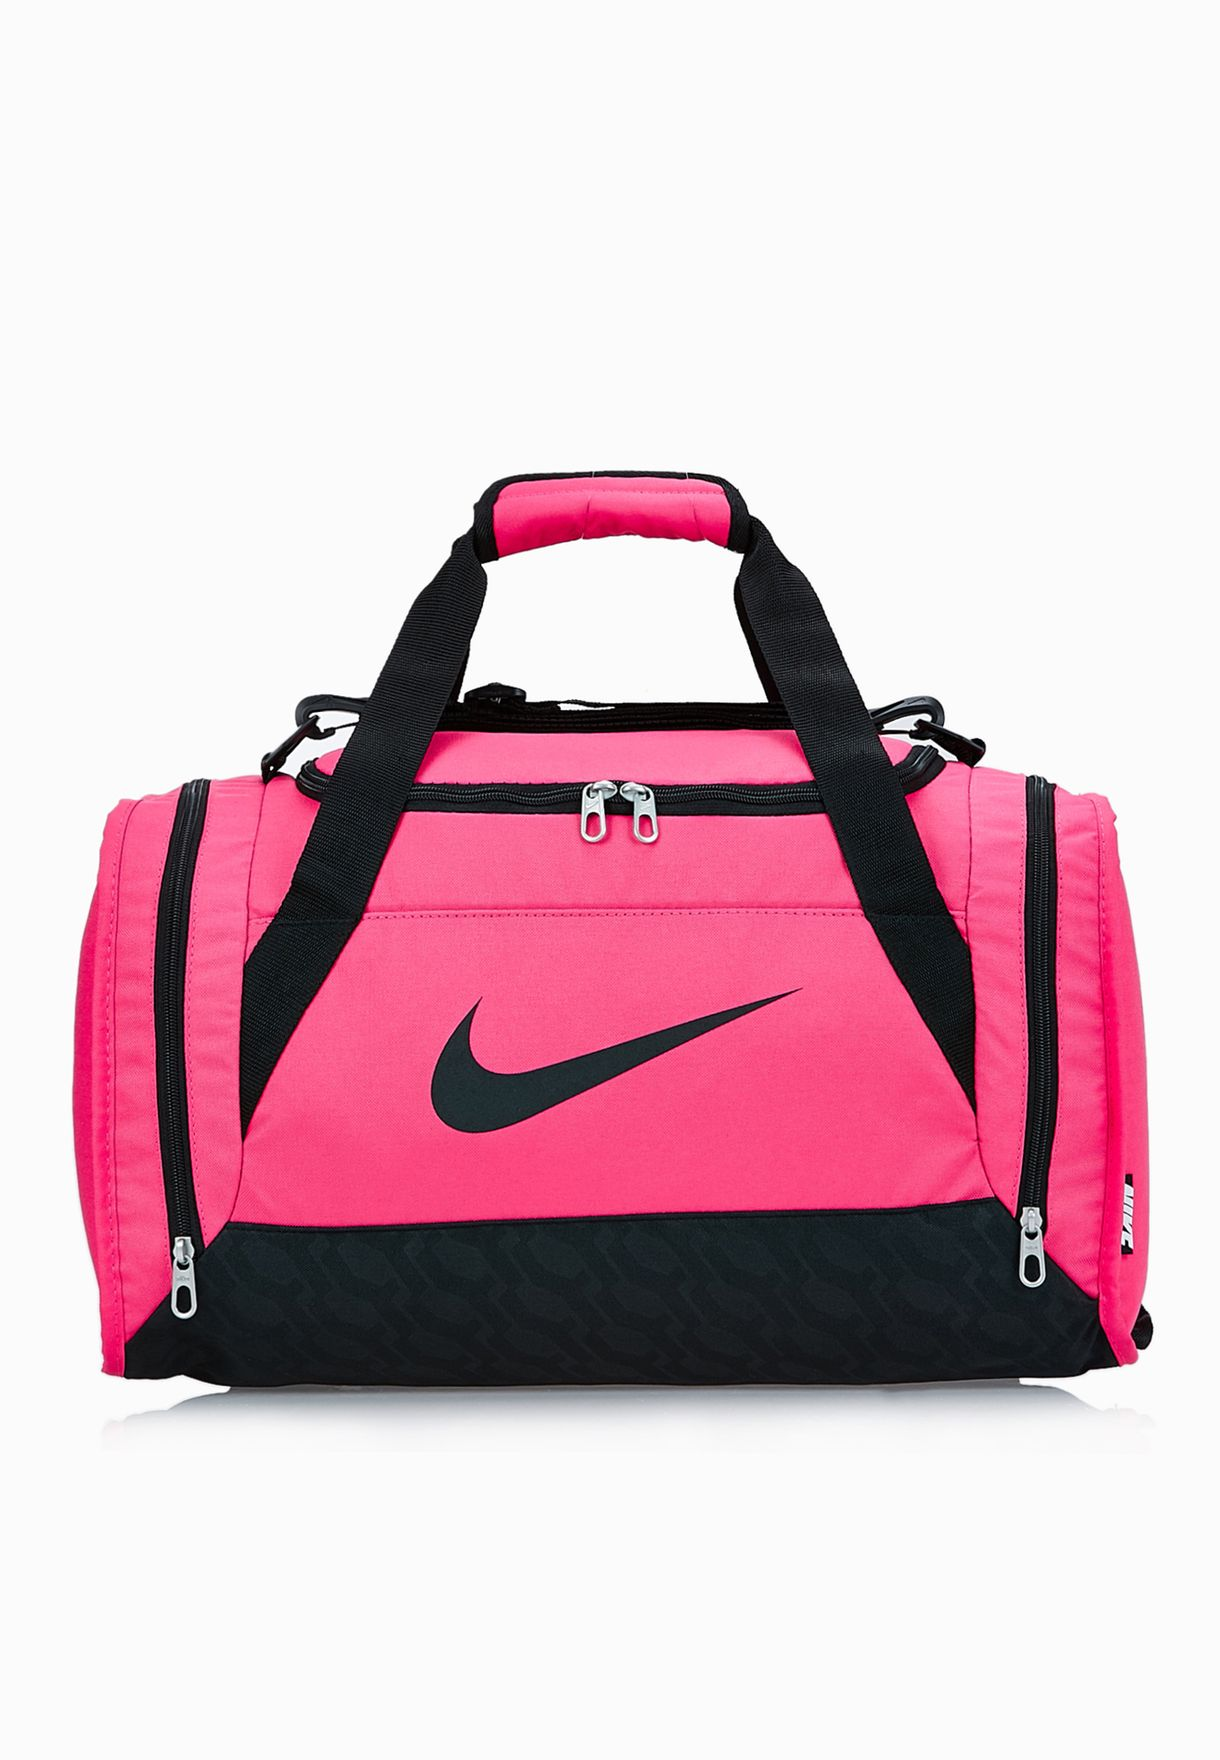 4979ac3b51e4 Shop Nike pink Womens Brasilia 6 Duffel S BA4910-606 for Women in ...